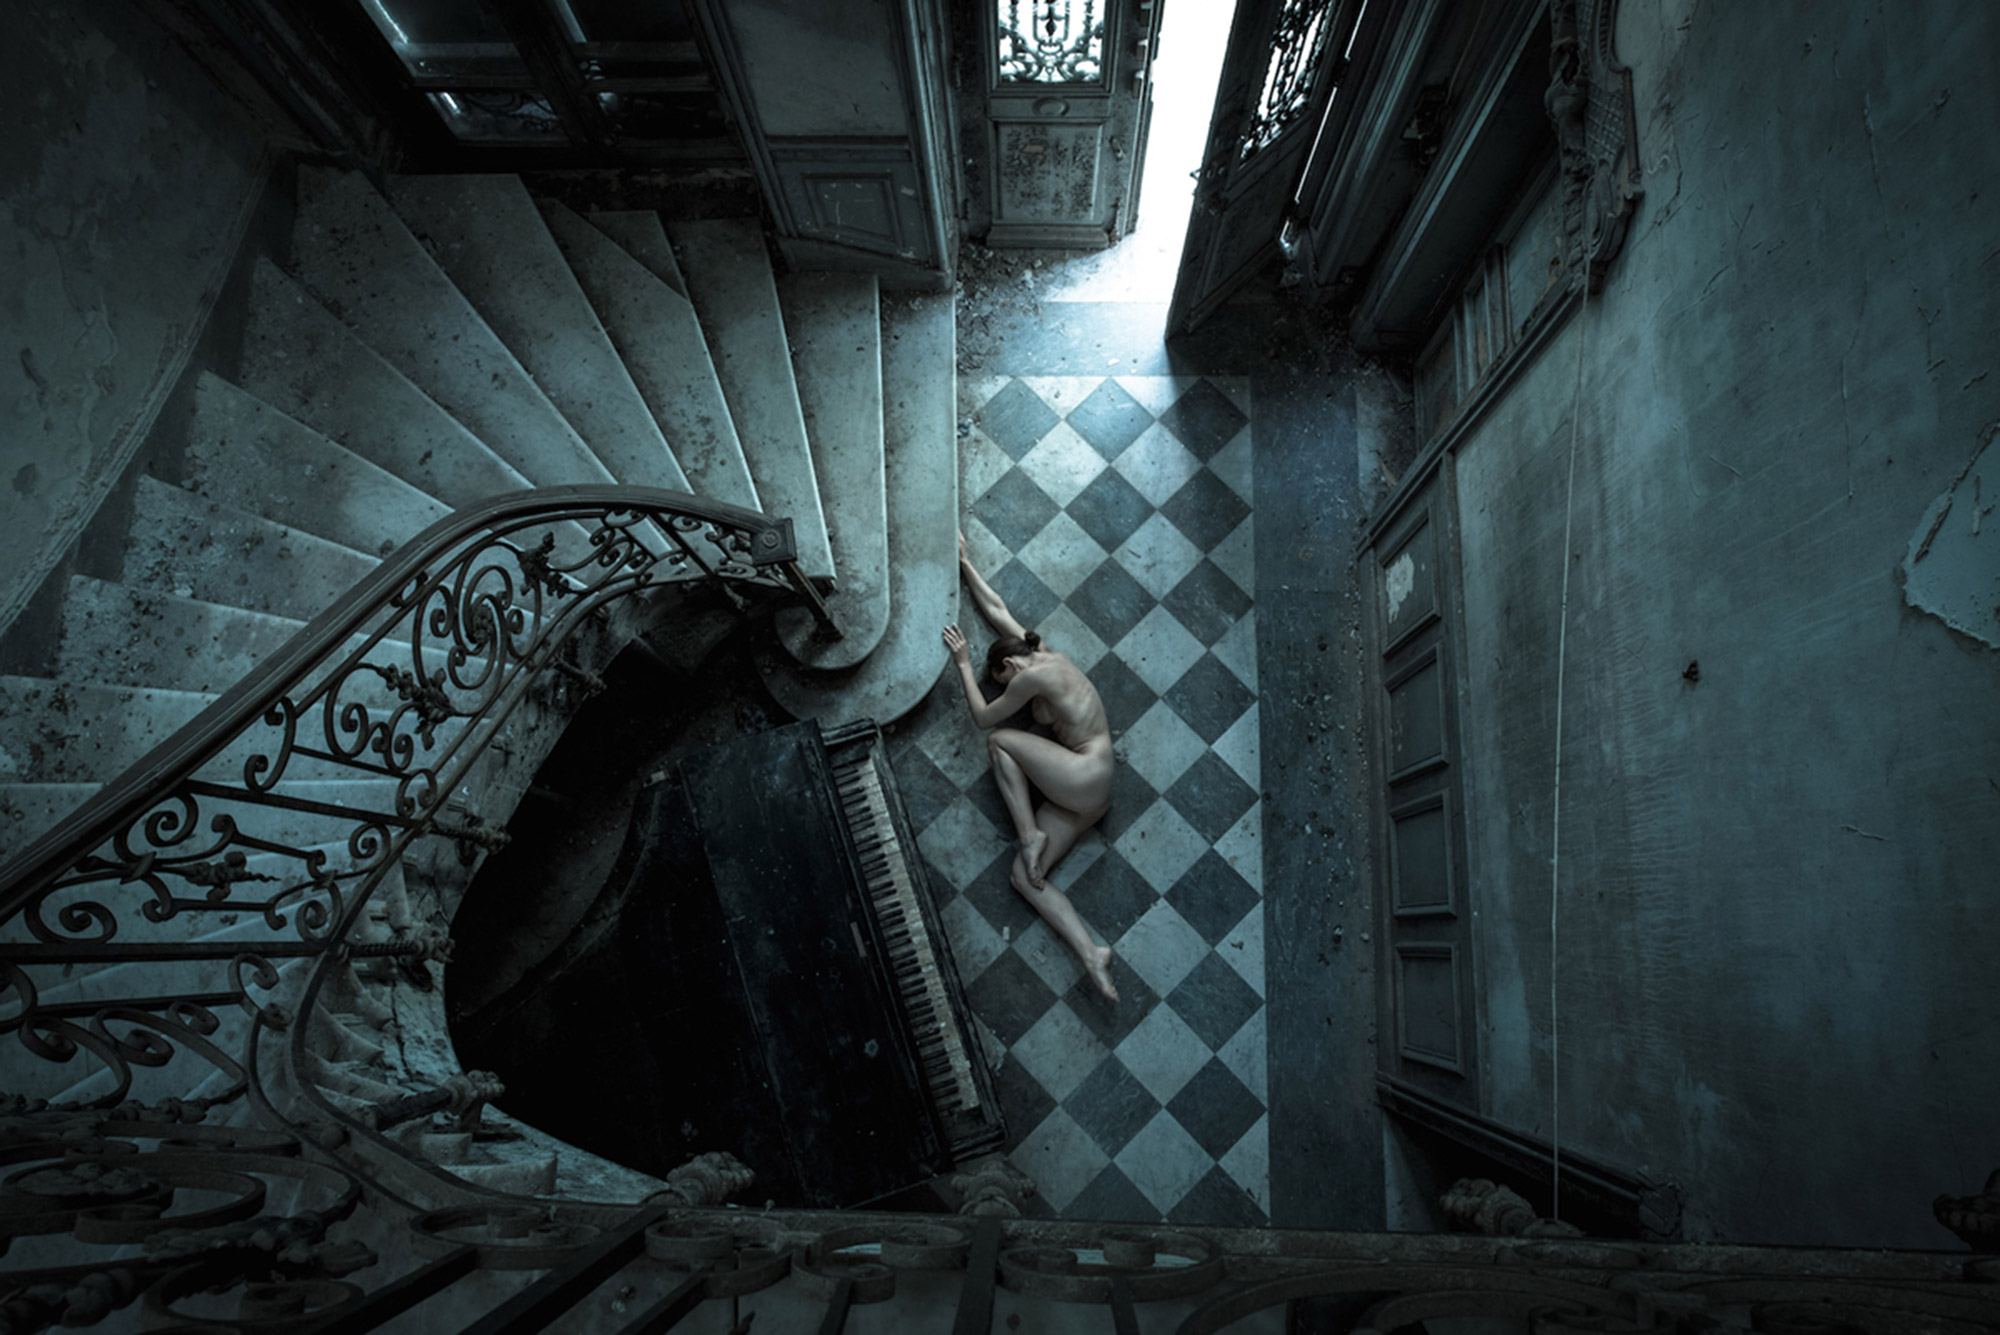 Jeremy Gibbs' Poetic Nude Portraits in Scenes of Ruin